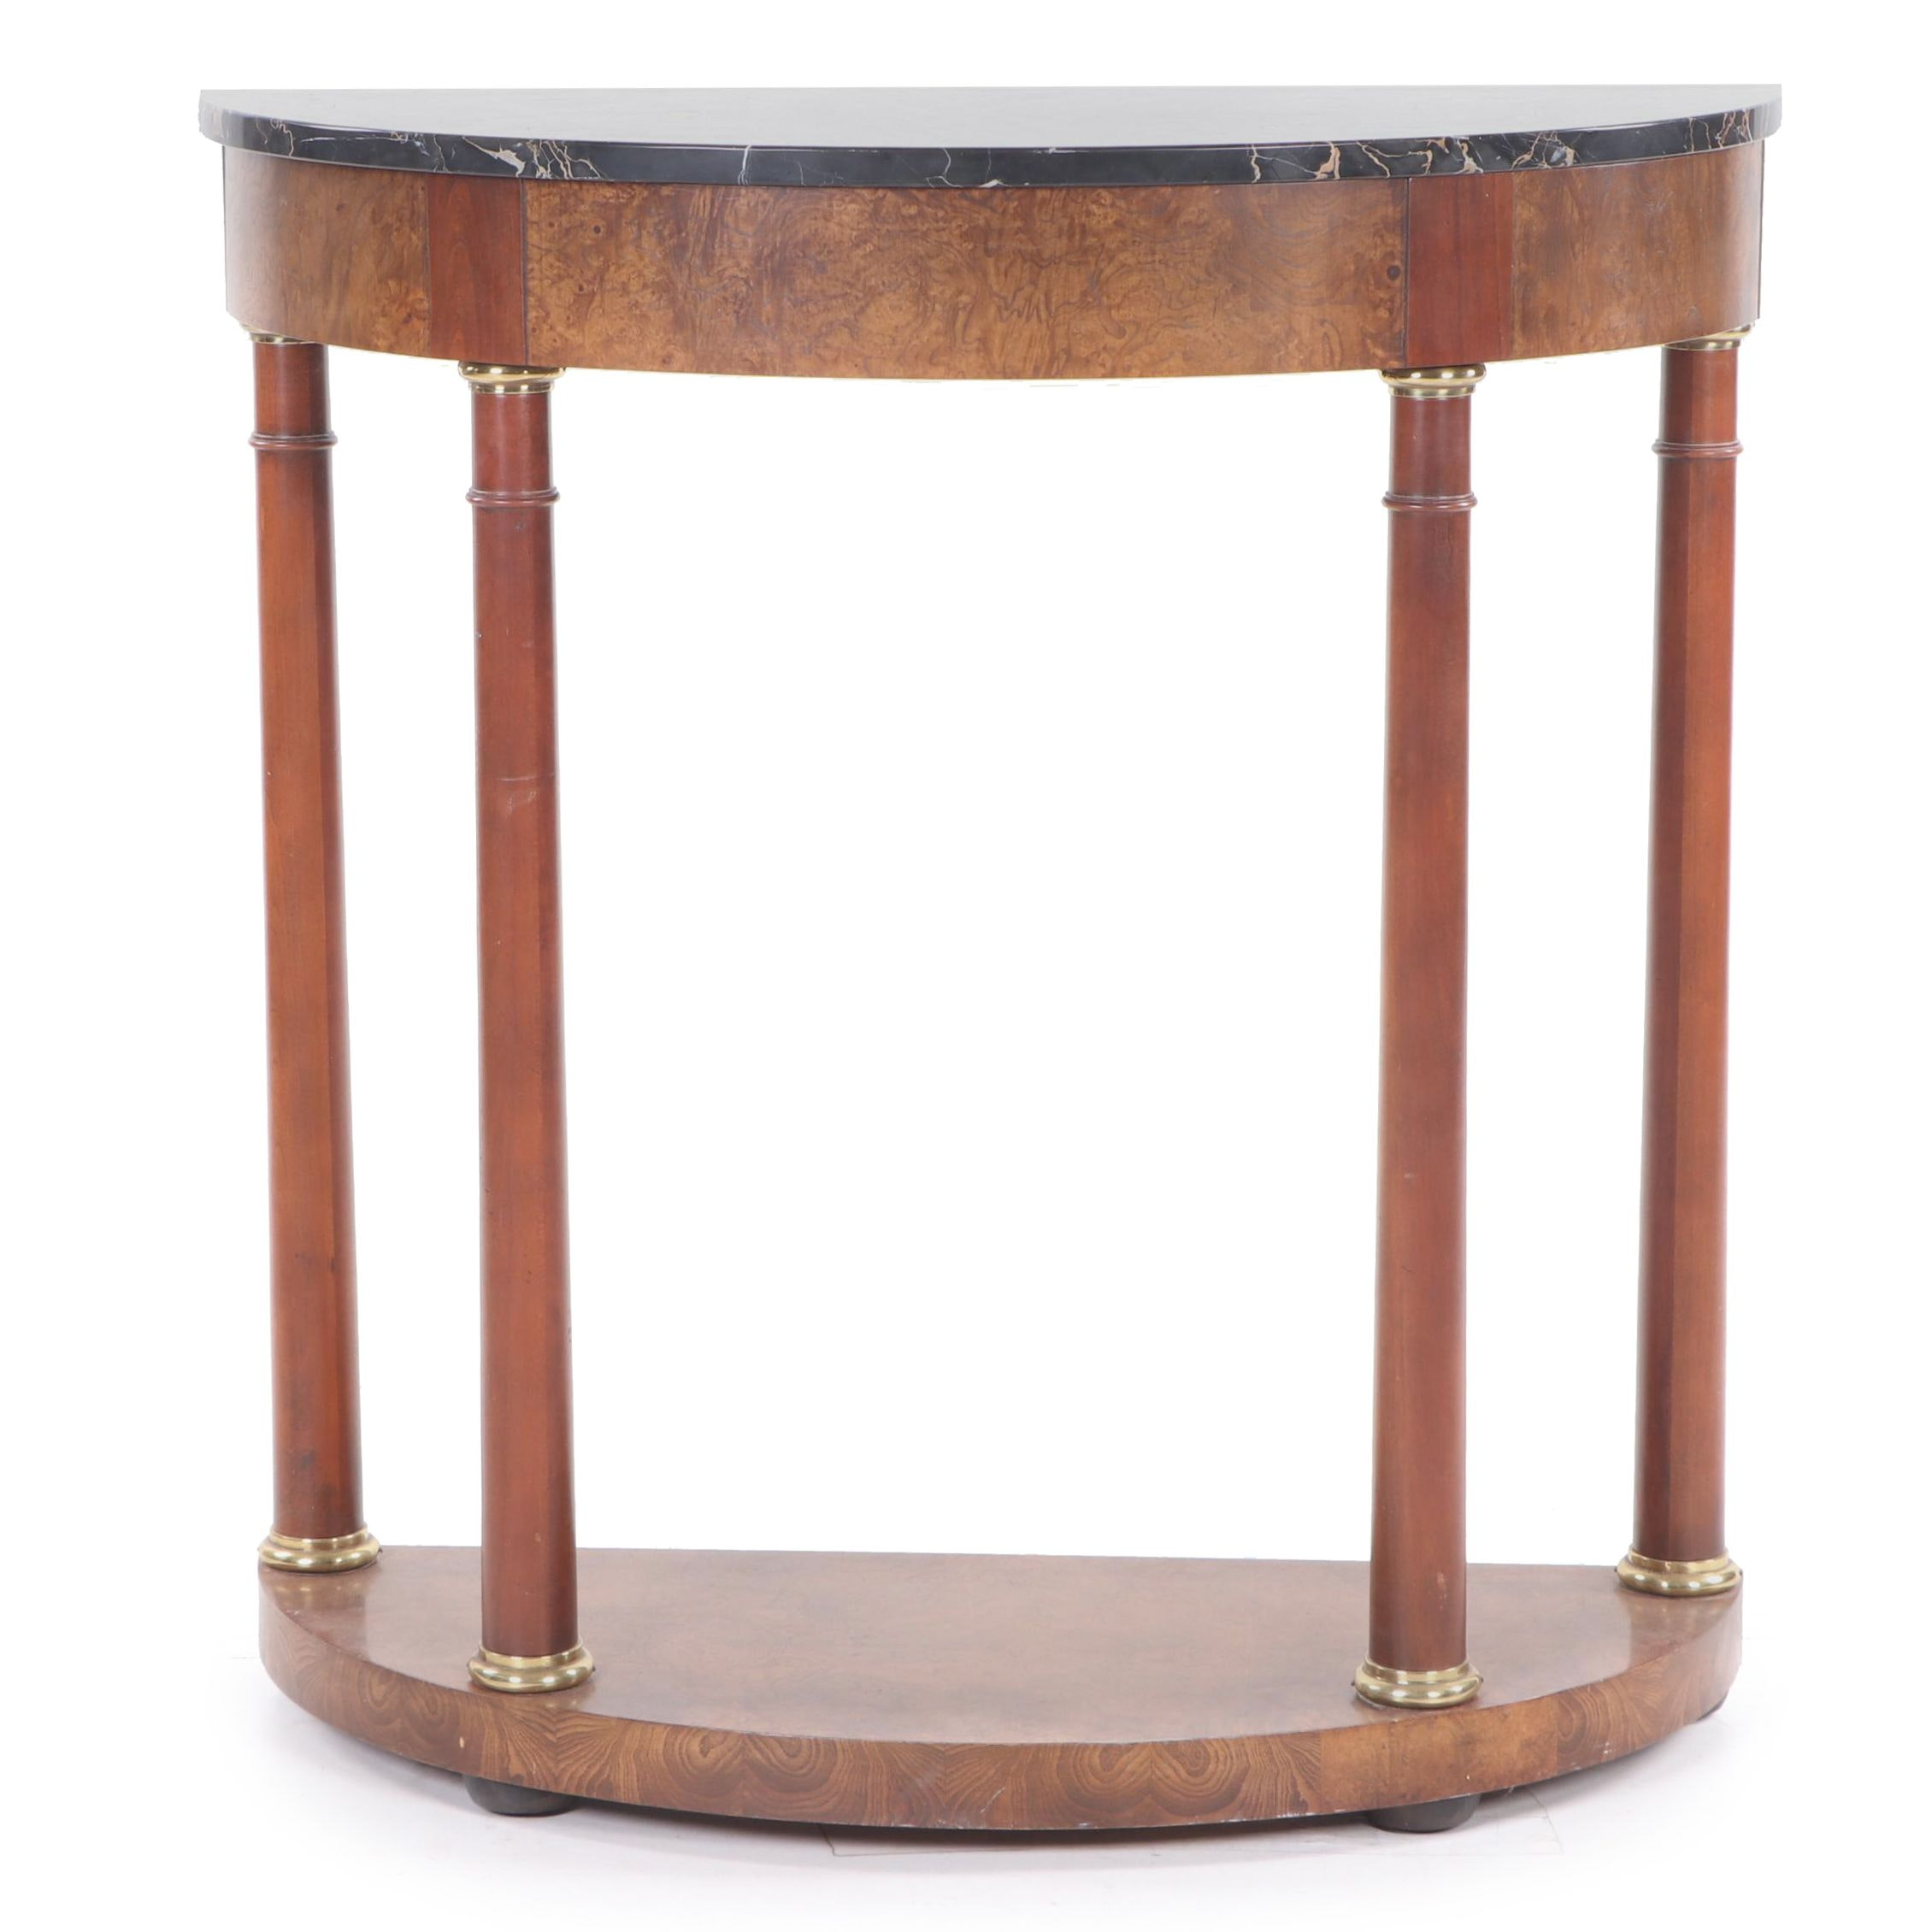 Baker French Empire Style Wooden Demi-Lune Marble Top Accent Table, 20th Century